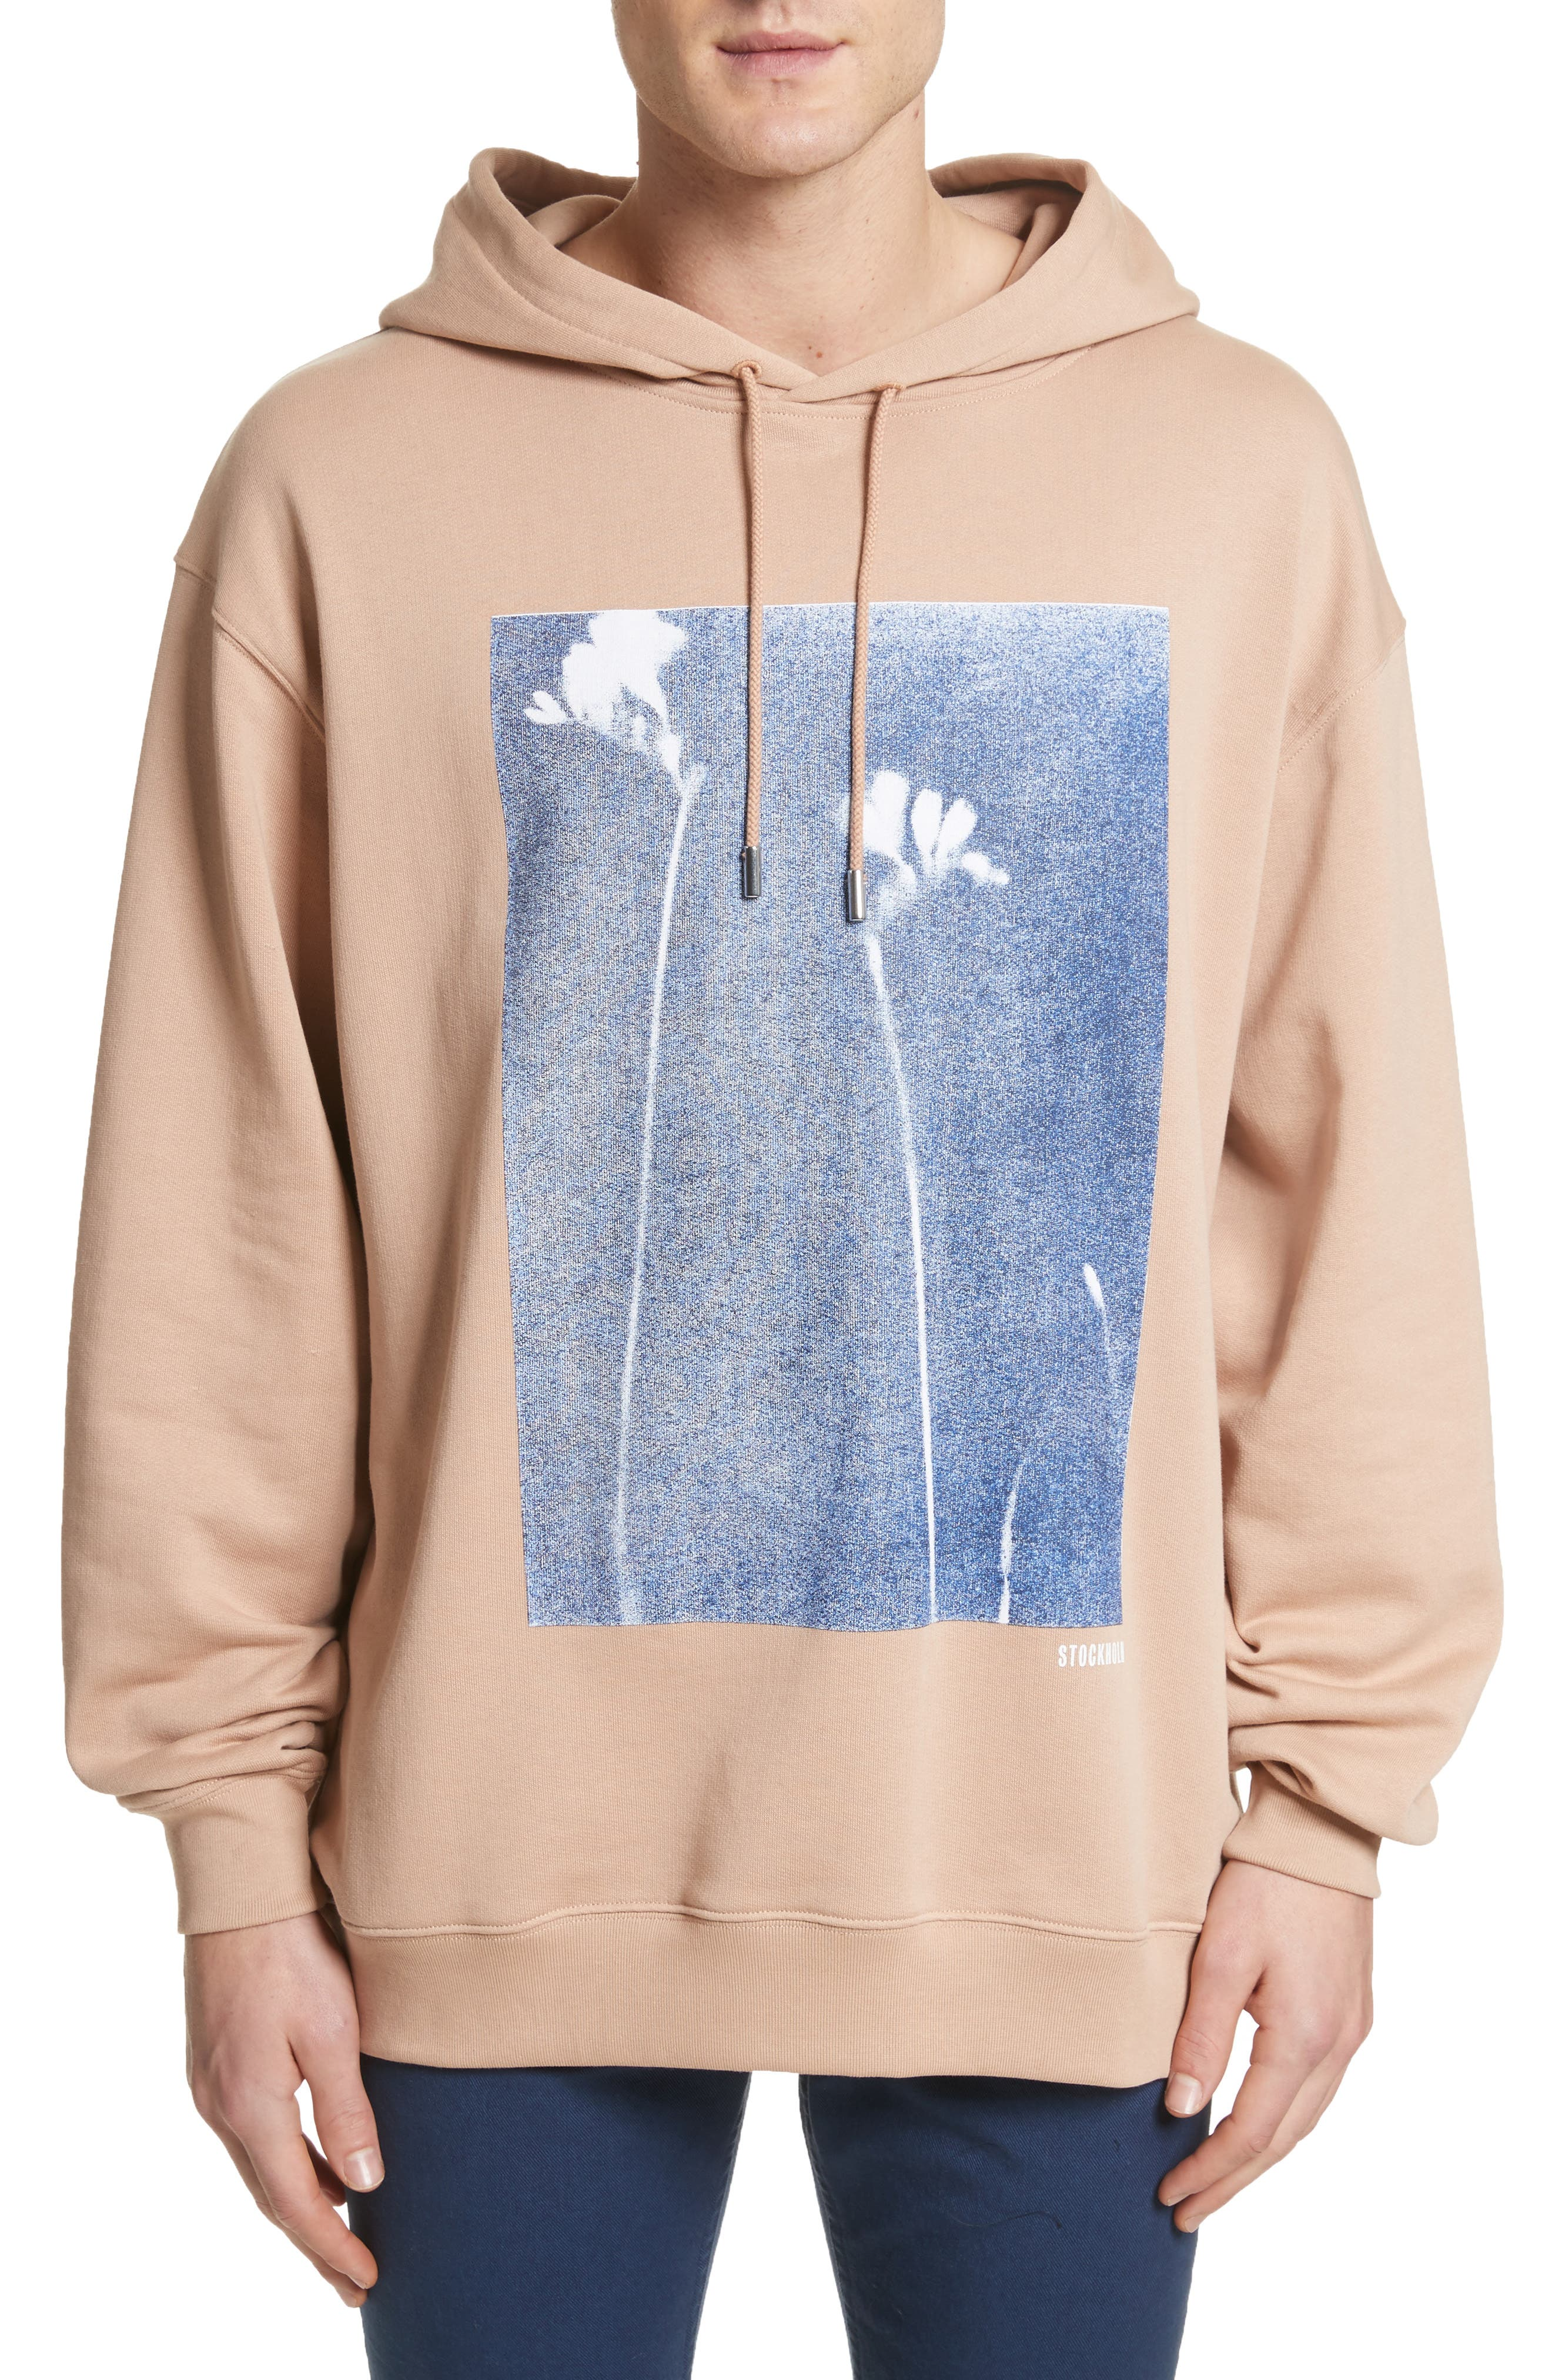 Fala Print Oversized Hoodie,                             Main thumbnail 1, color,                             Beige